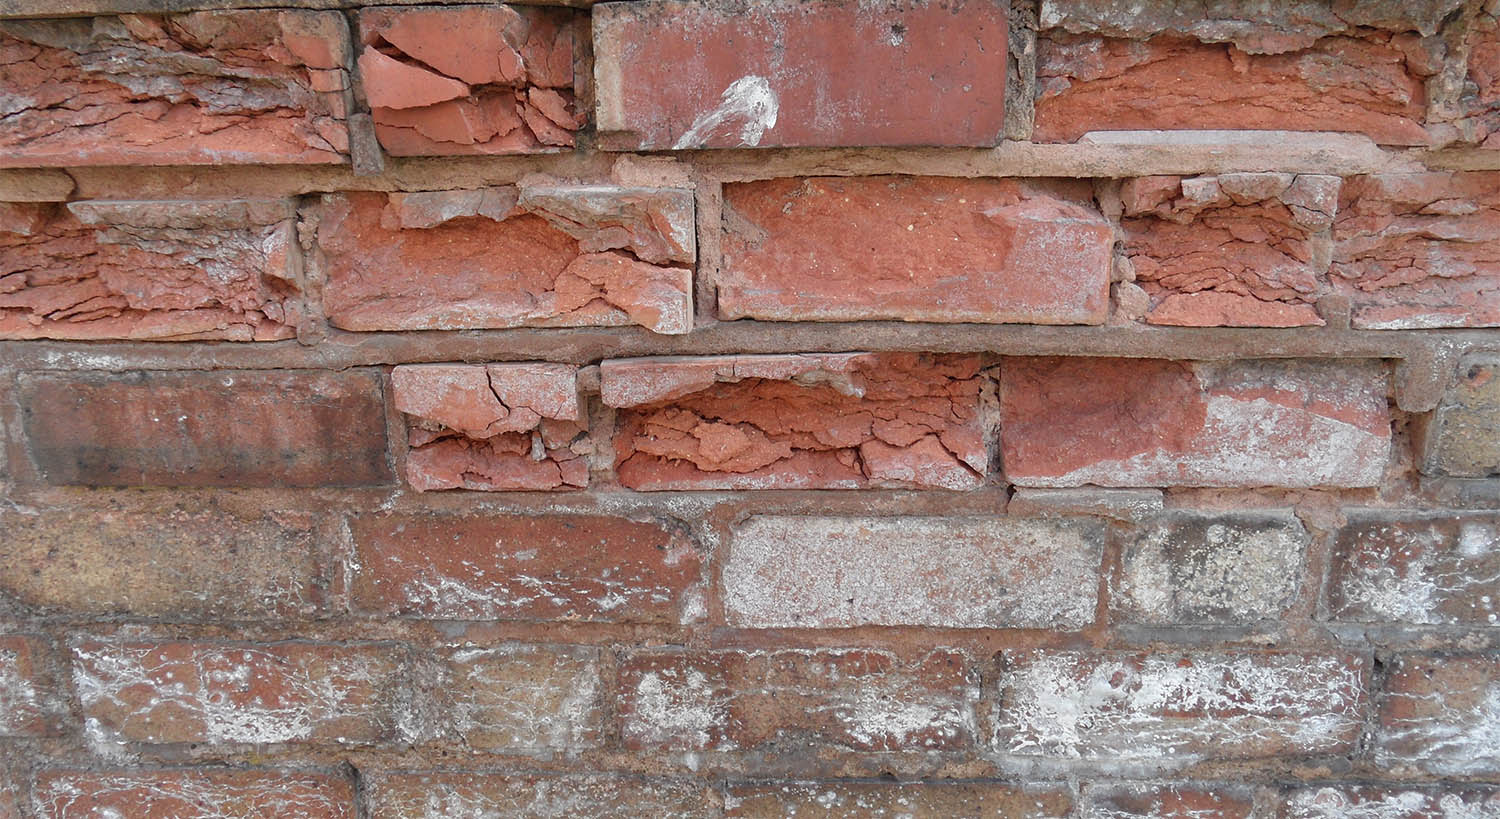 common problems with brick homes walls with both Spalling damage and Efflorescence.